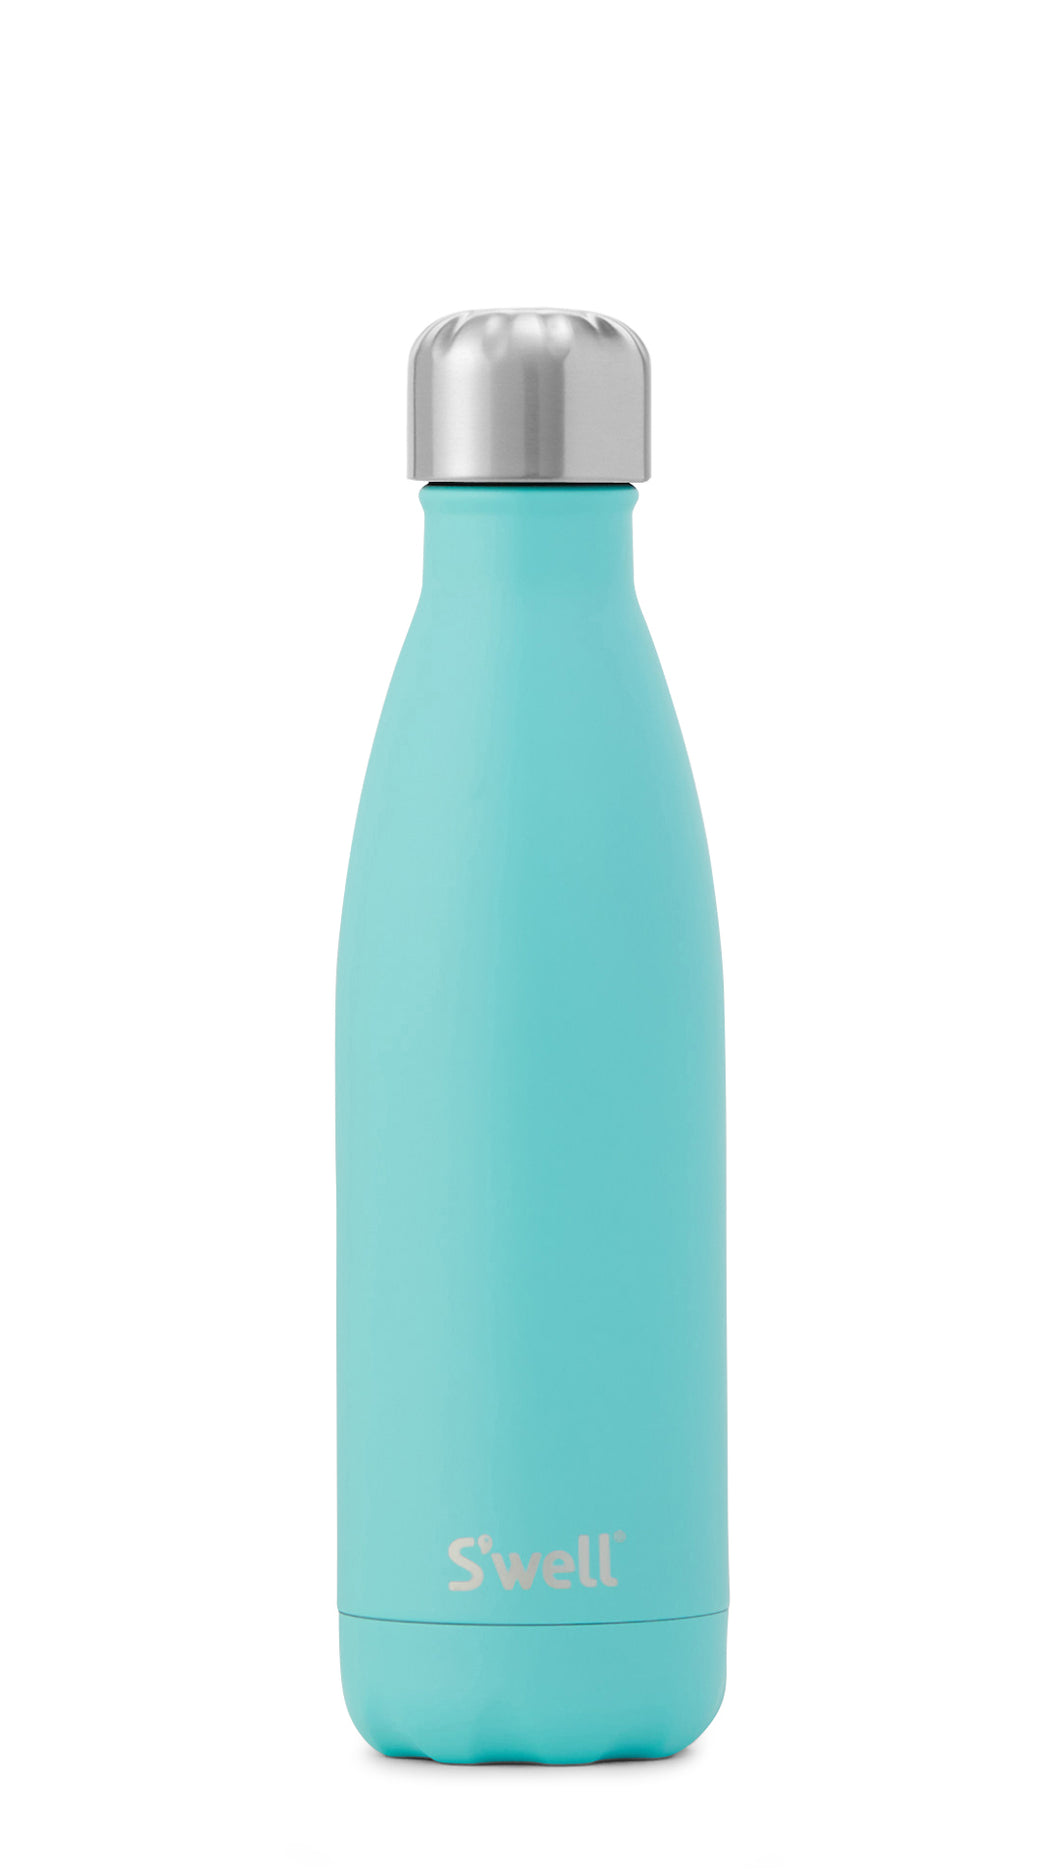 S'well Drink Bottle - Turquoise Blue 500ml & 750ml